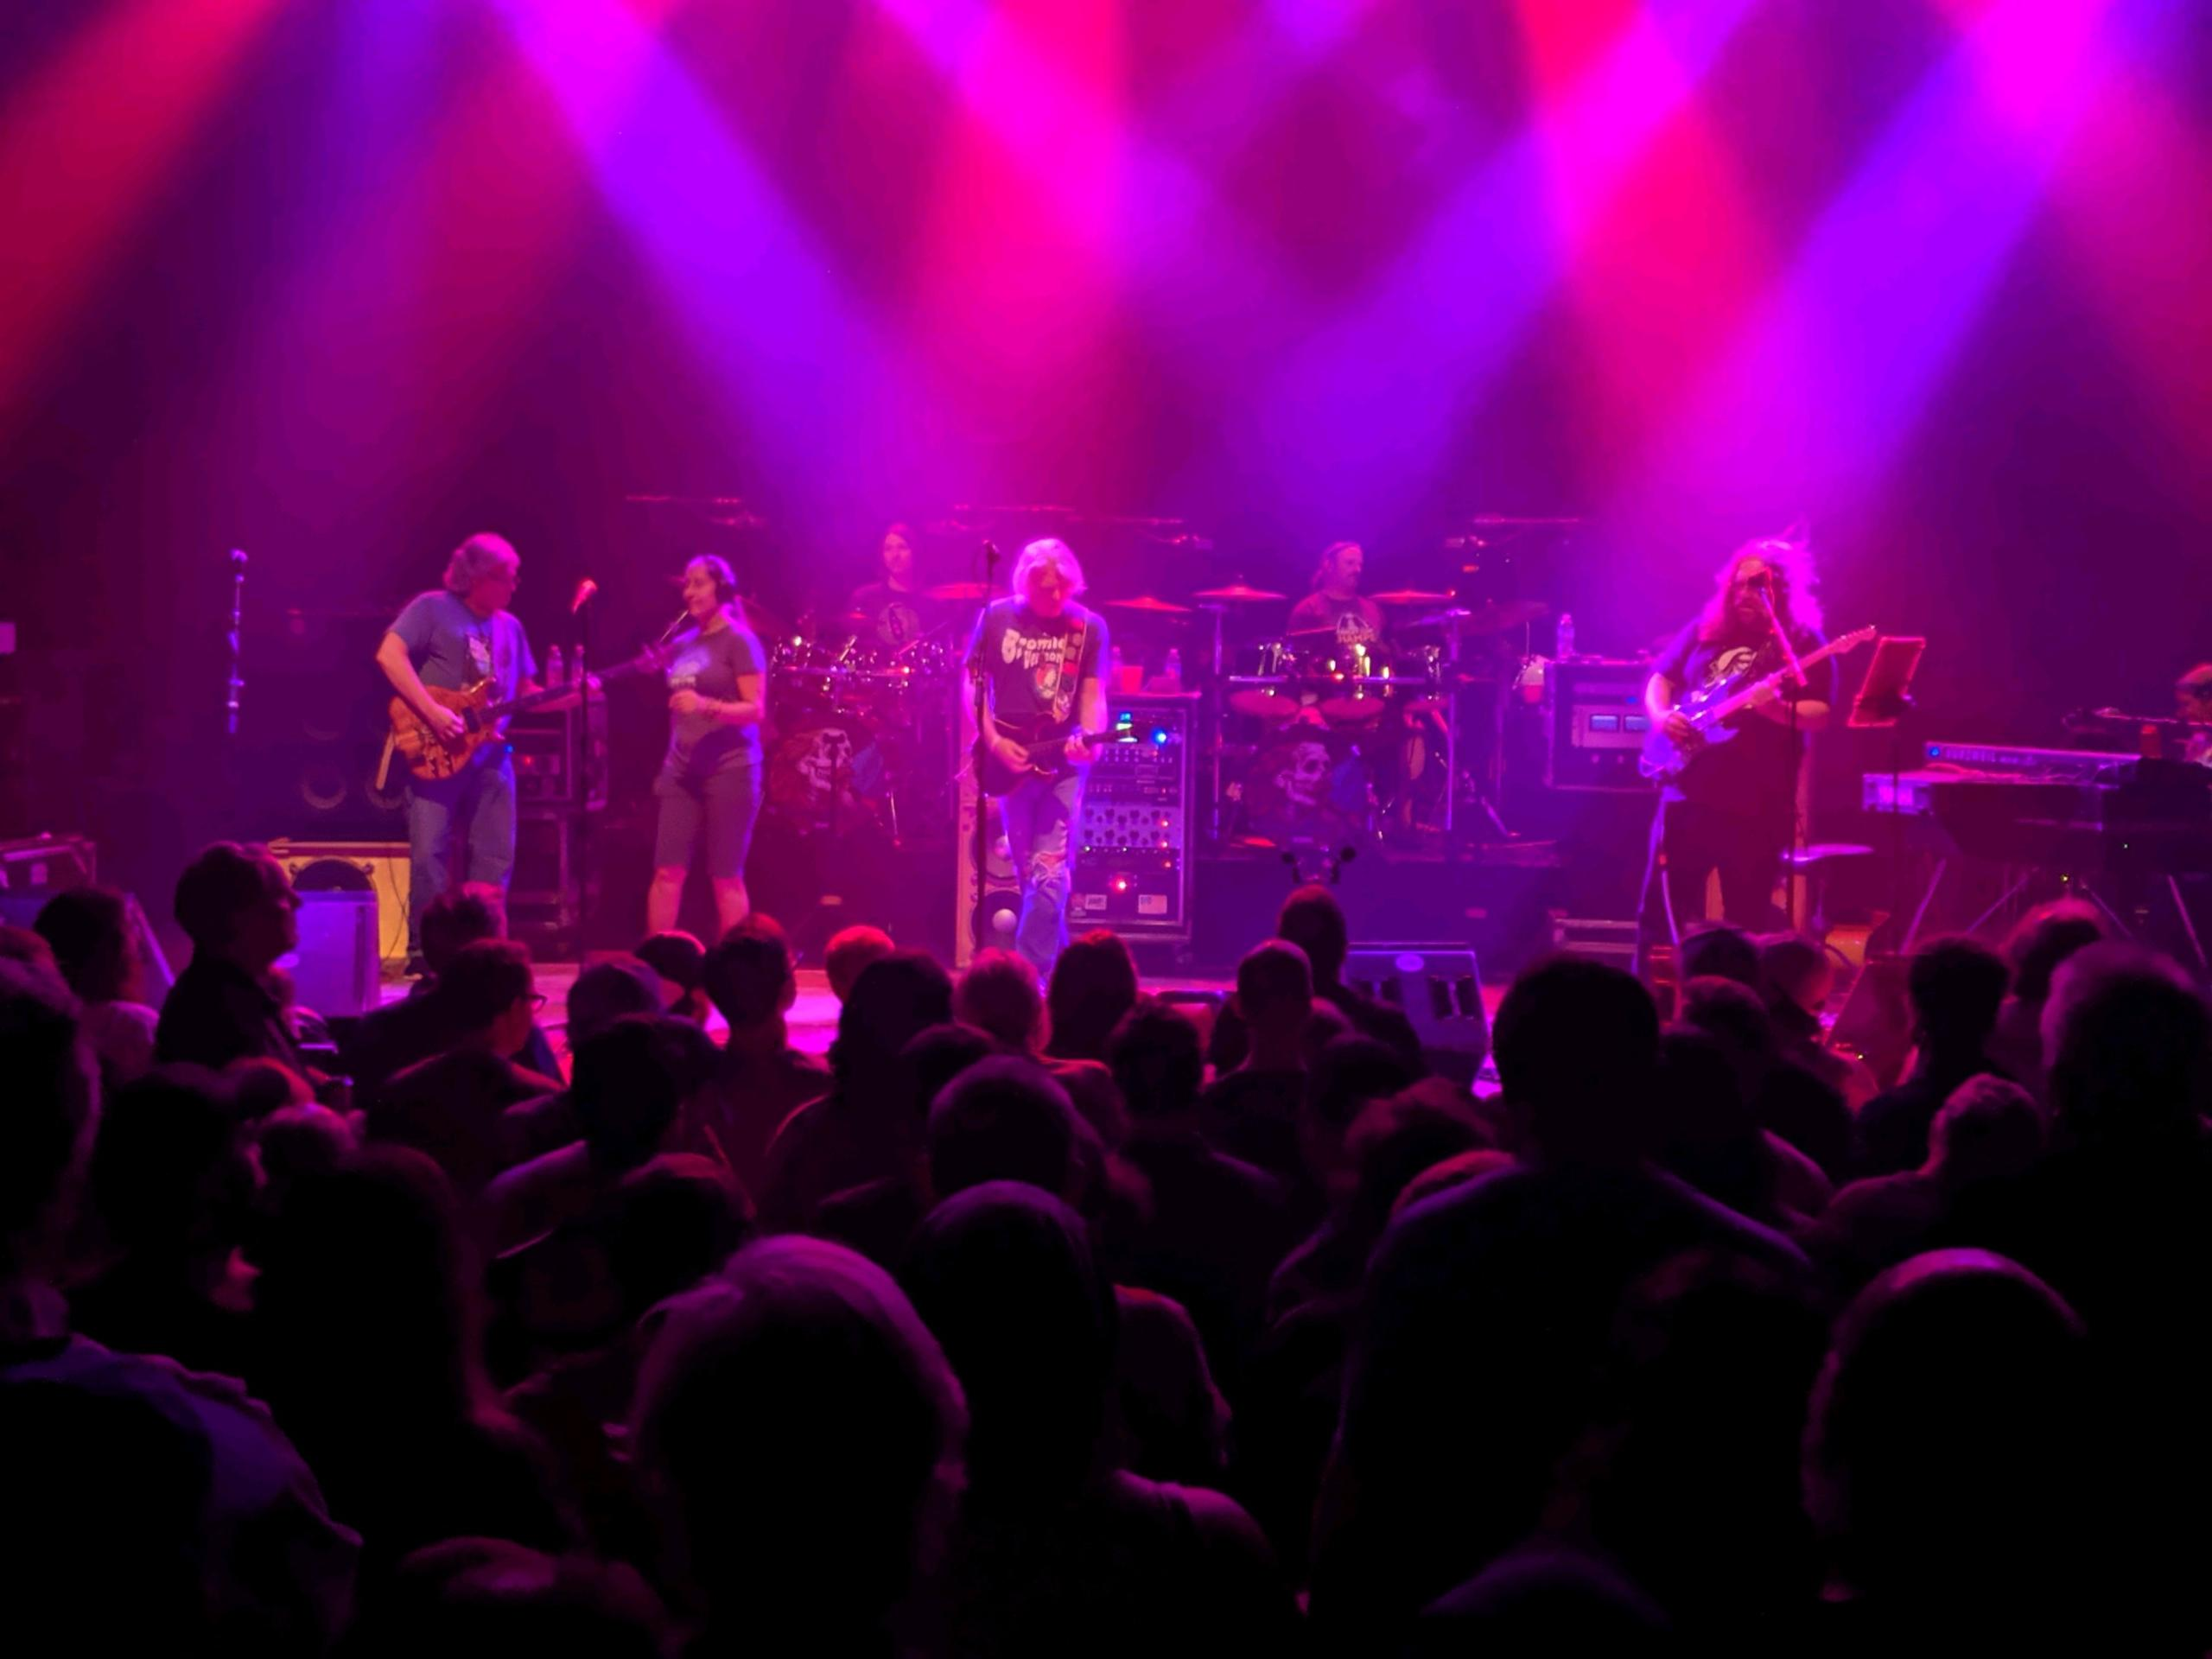 DarkStarOrchestra2019-09-26VicTheaterChicagoIL (3).jpg